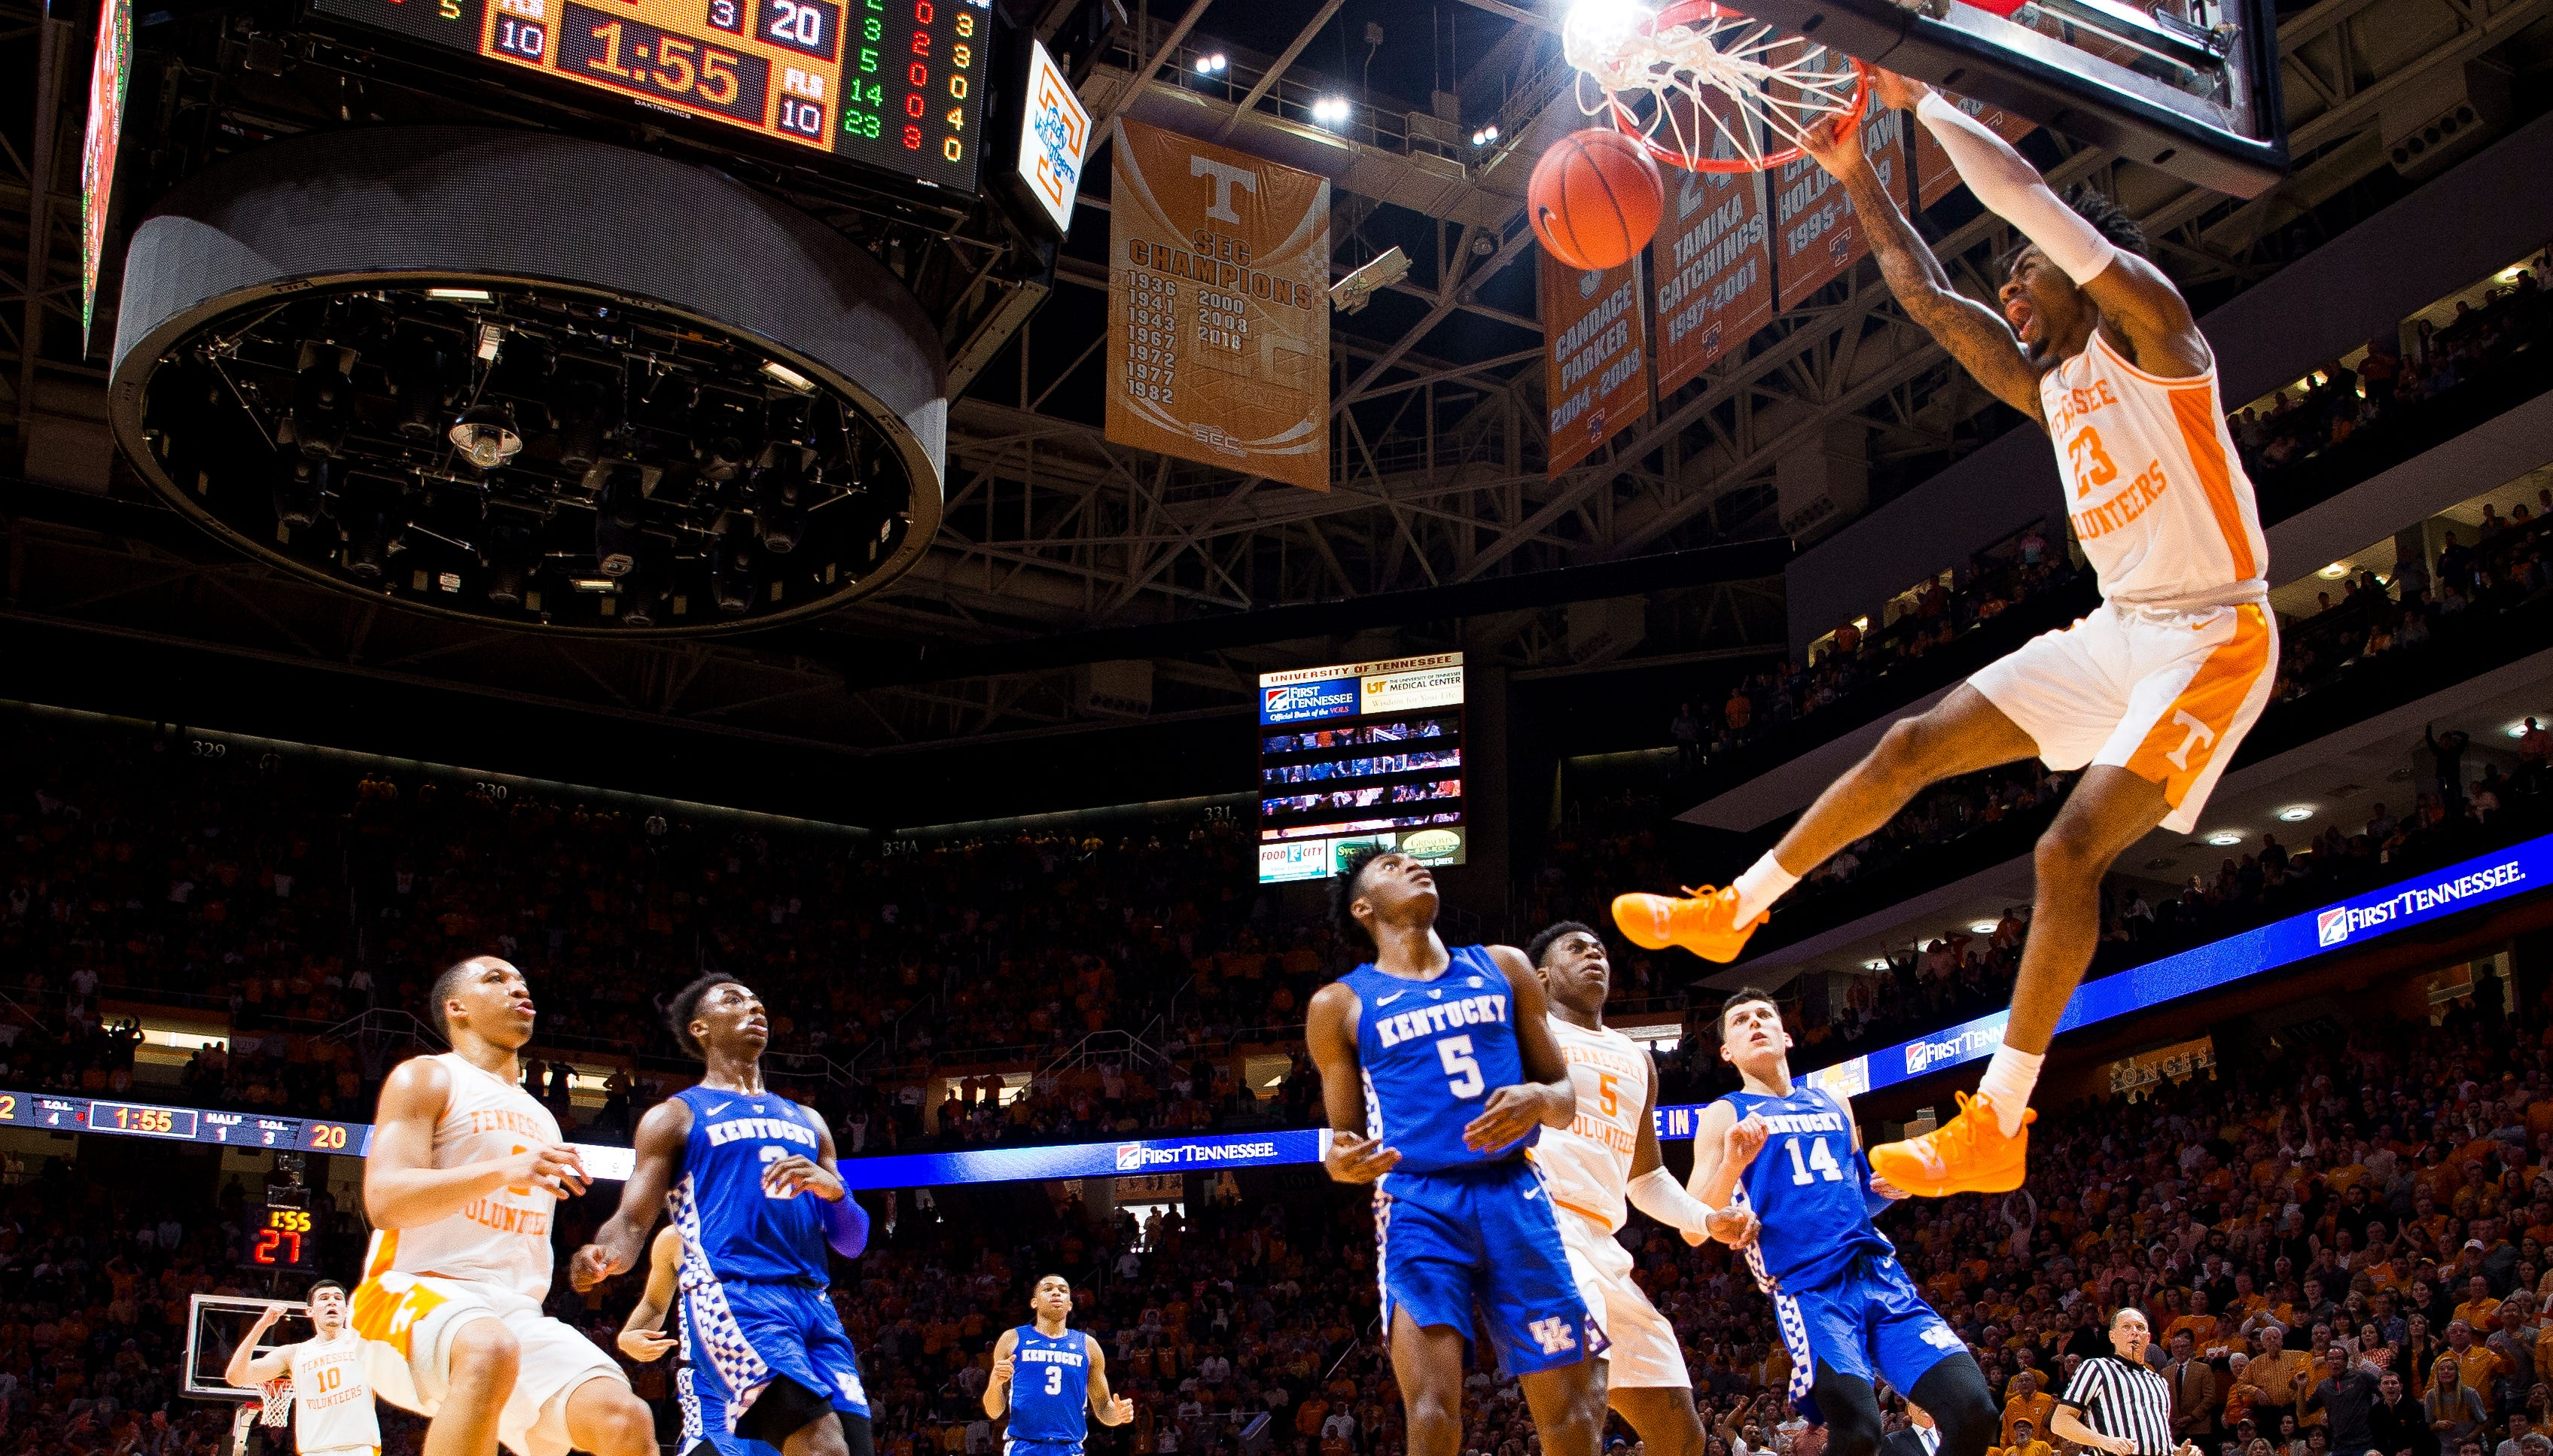 Uk Basketball Uk Vs Tenn: Tennessee Vs Kentucky Basketball: WATCH Dunks By Schofield